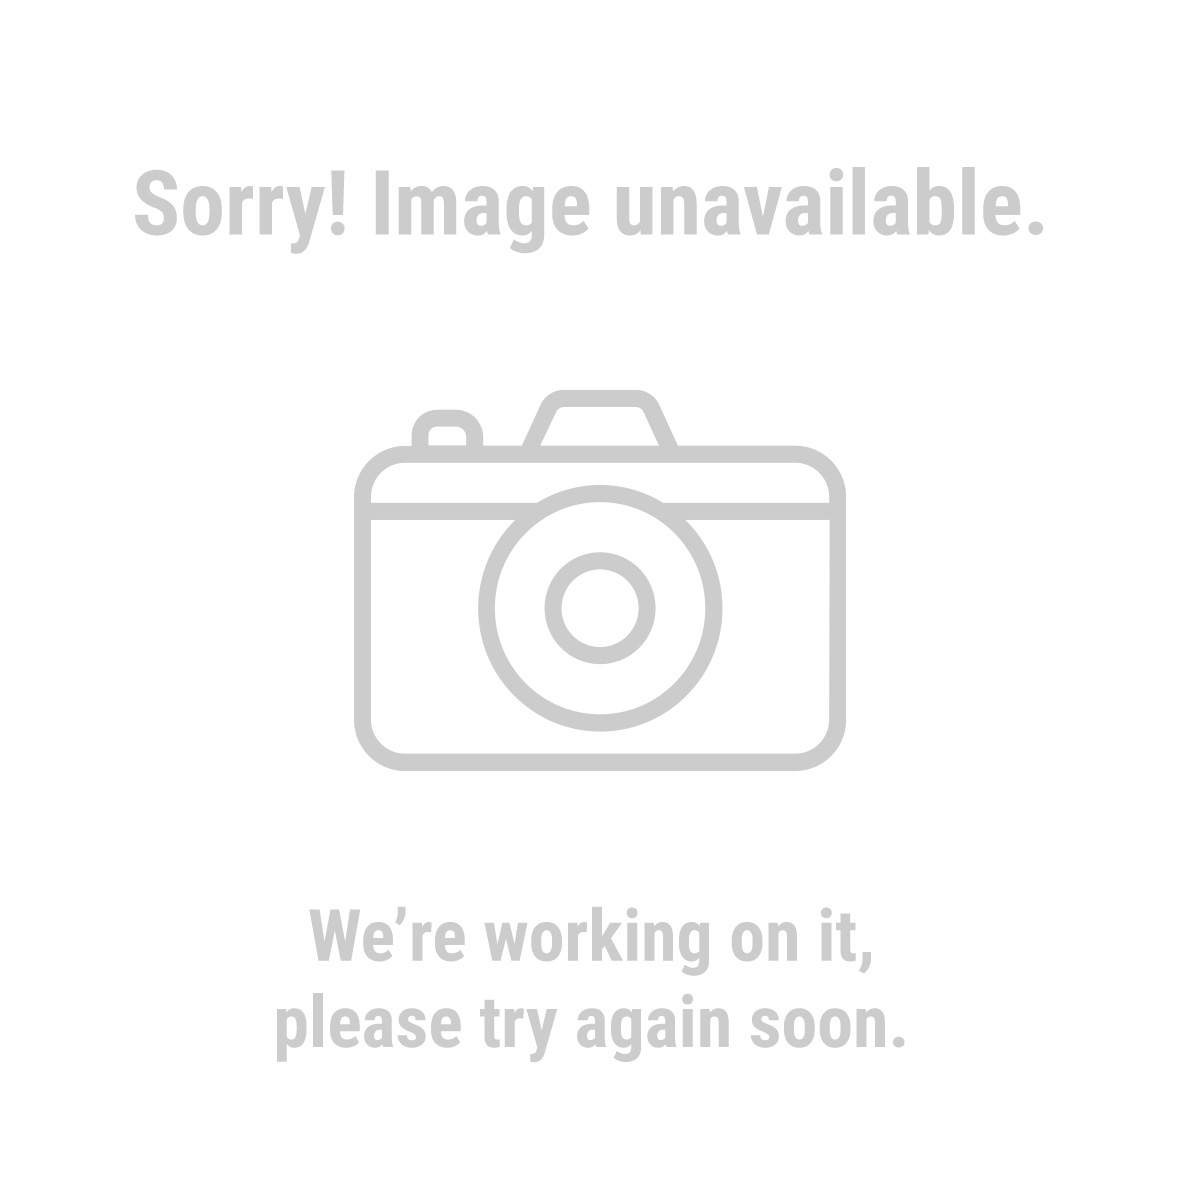 Central Machinery 44991 Two-Speed Variable Bench Mill/Drill Machine